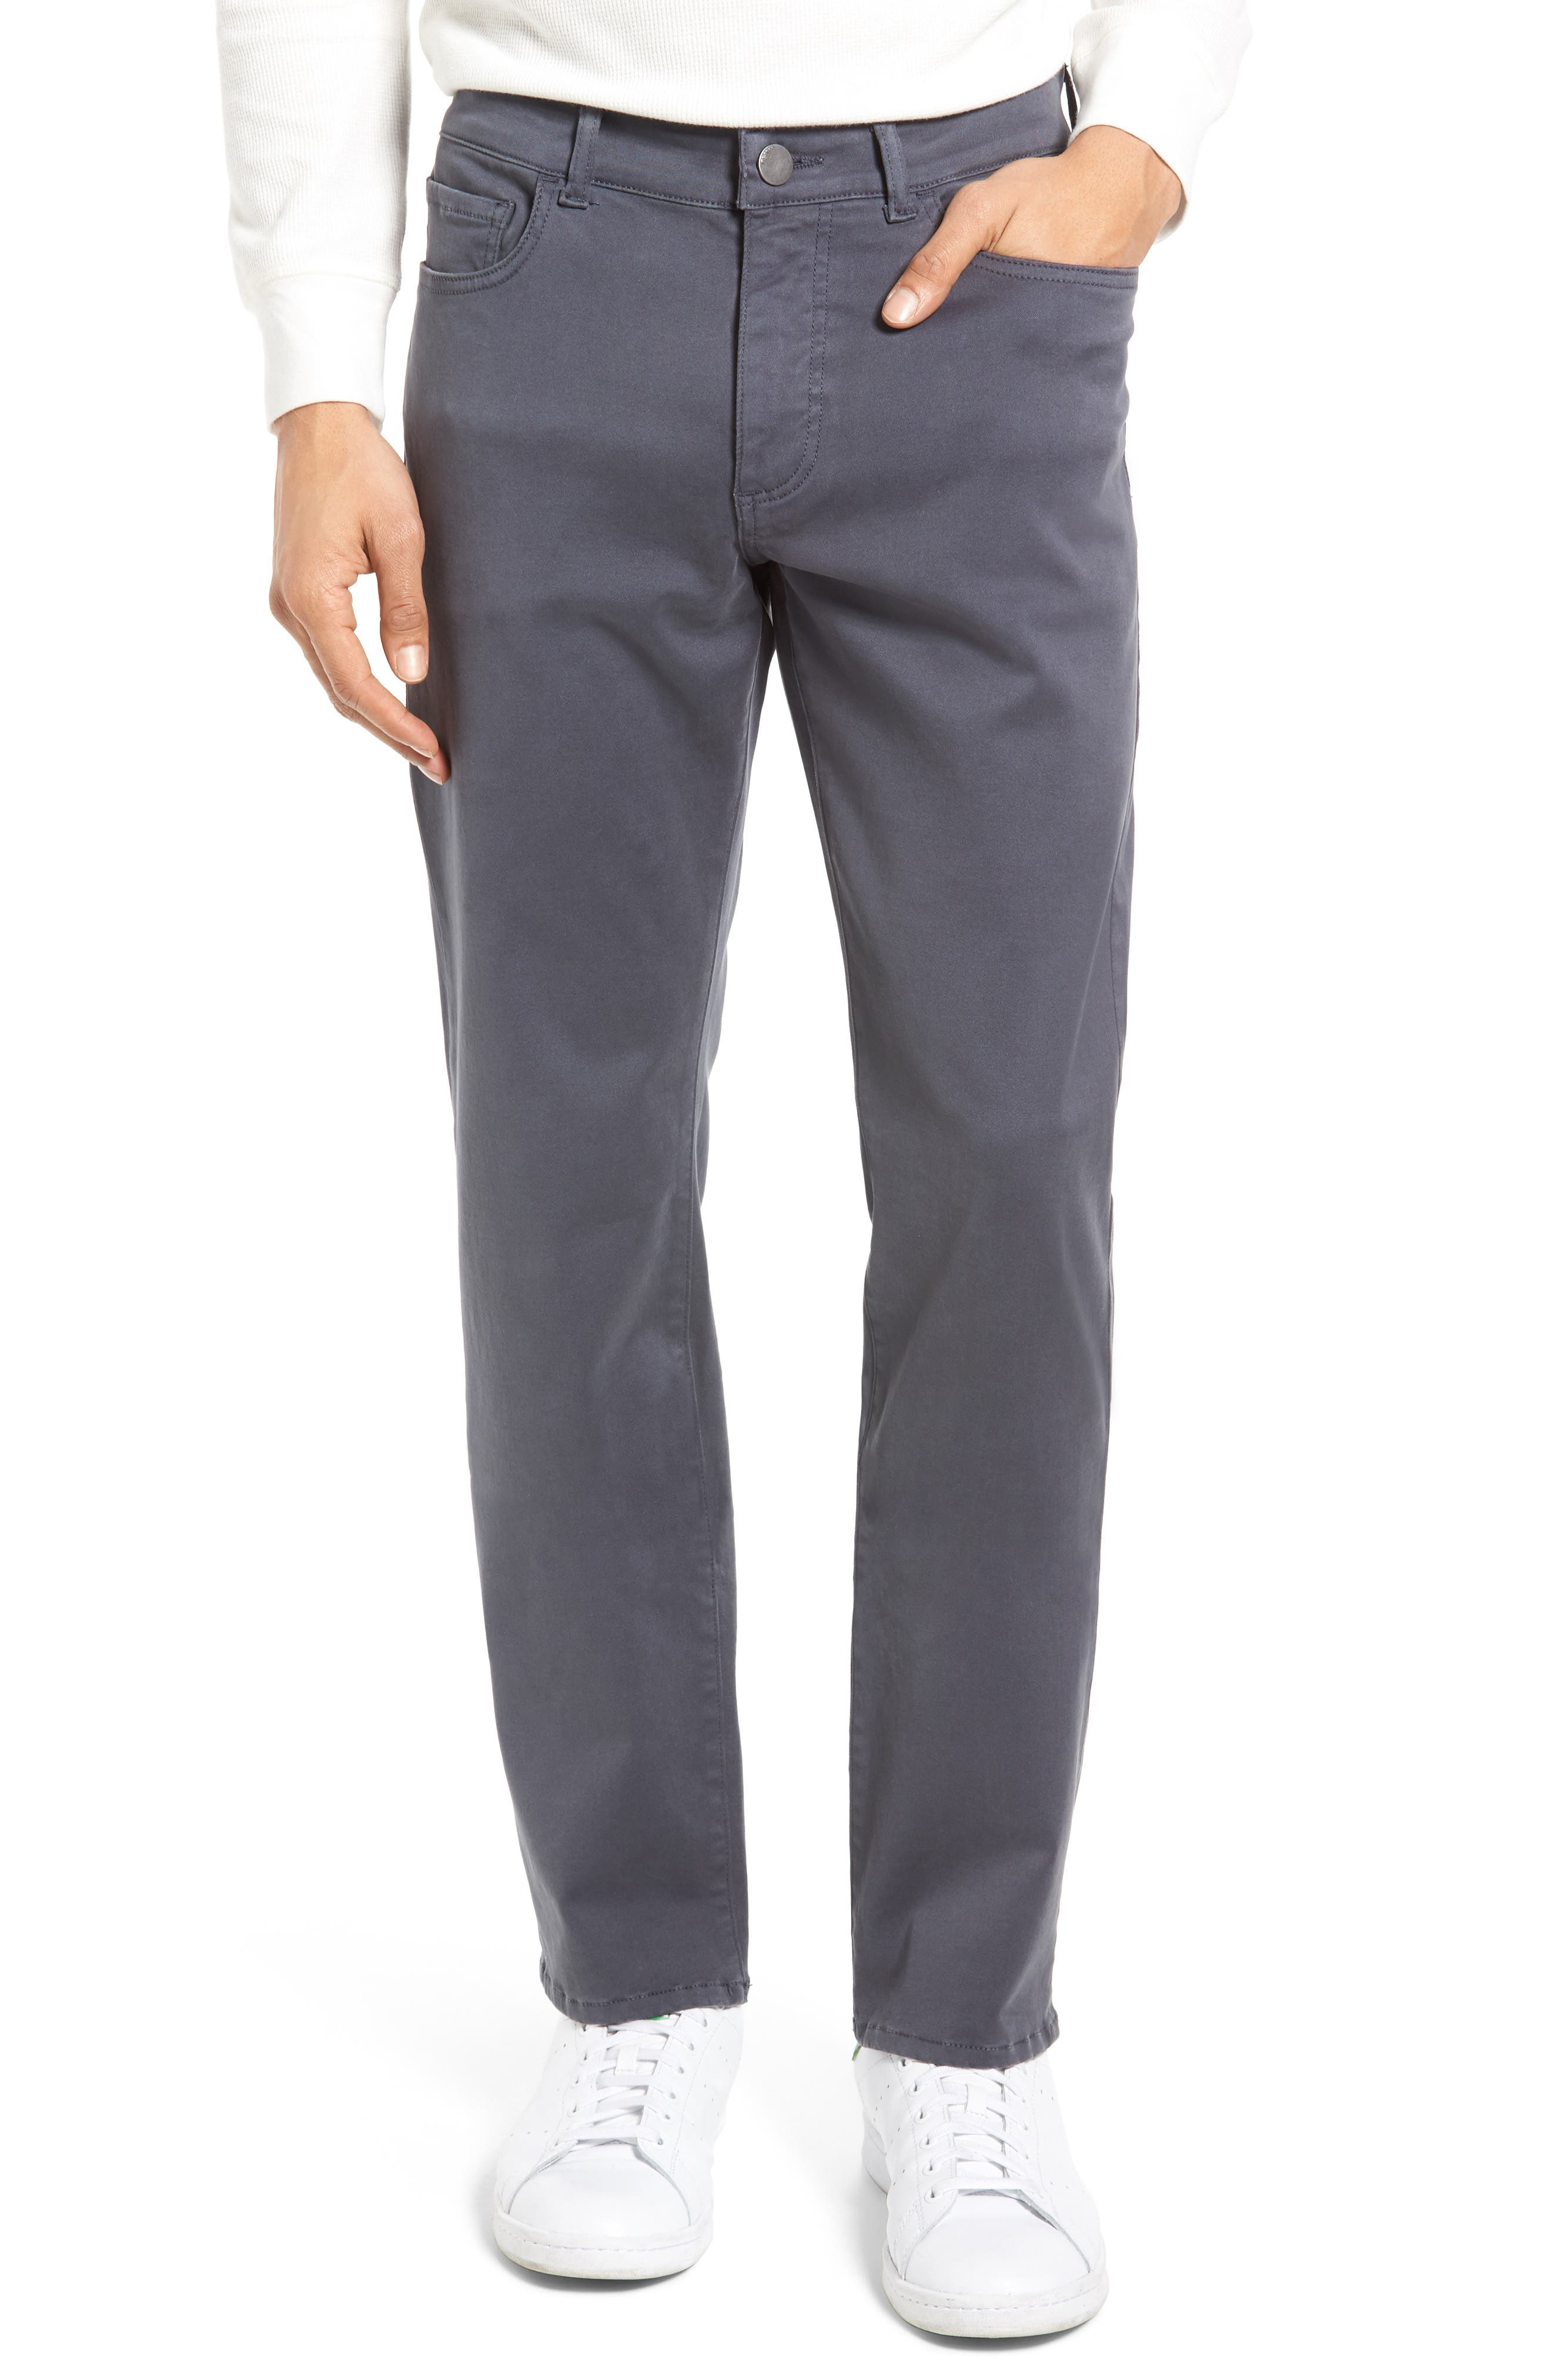 Russell Slim Fit Sateen Twill Pants,                             Main thumbnail 8, color,